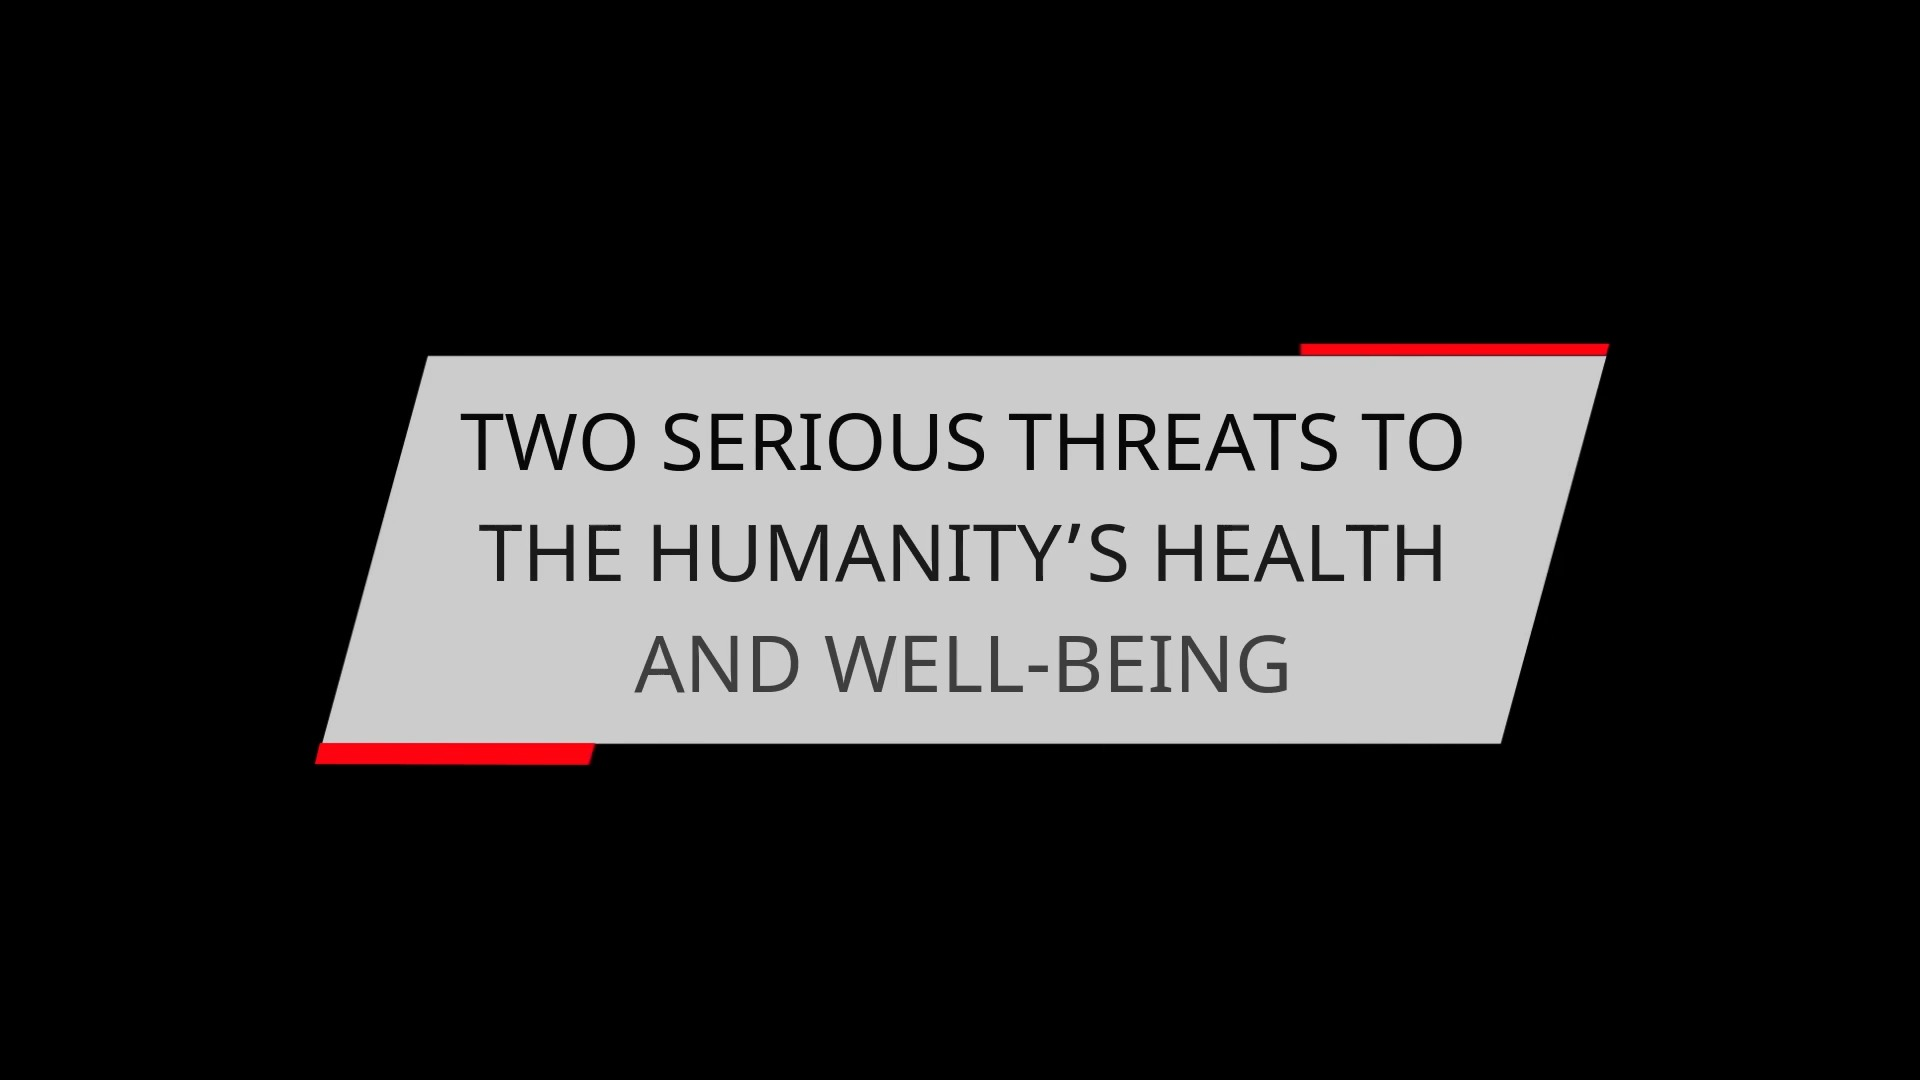 TWO SERIOUS THREATS TO THE HUMANITY'S HEALTH AND WELL-BEING